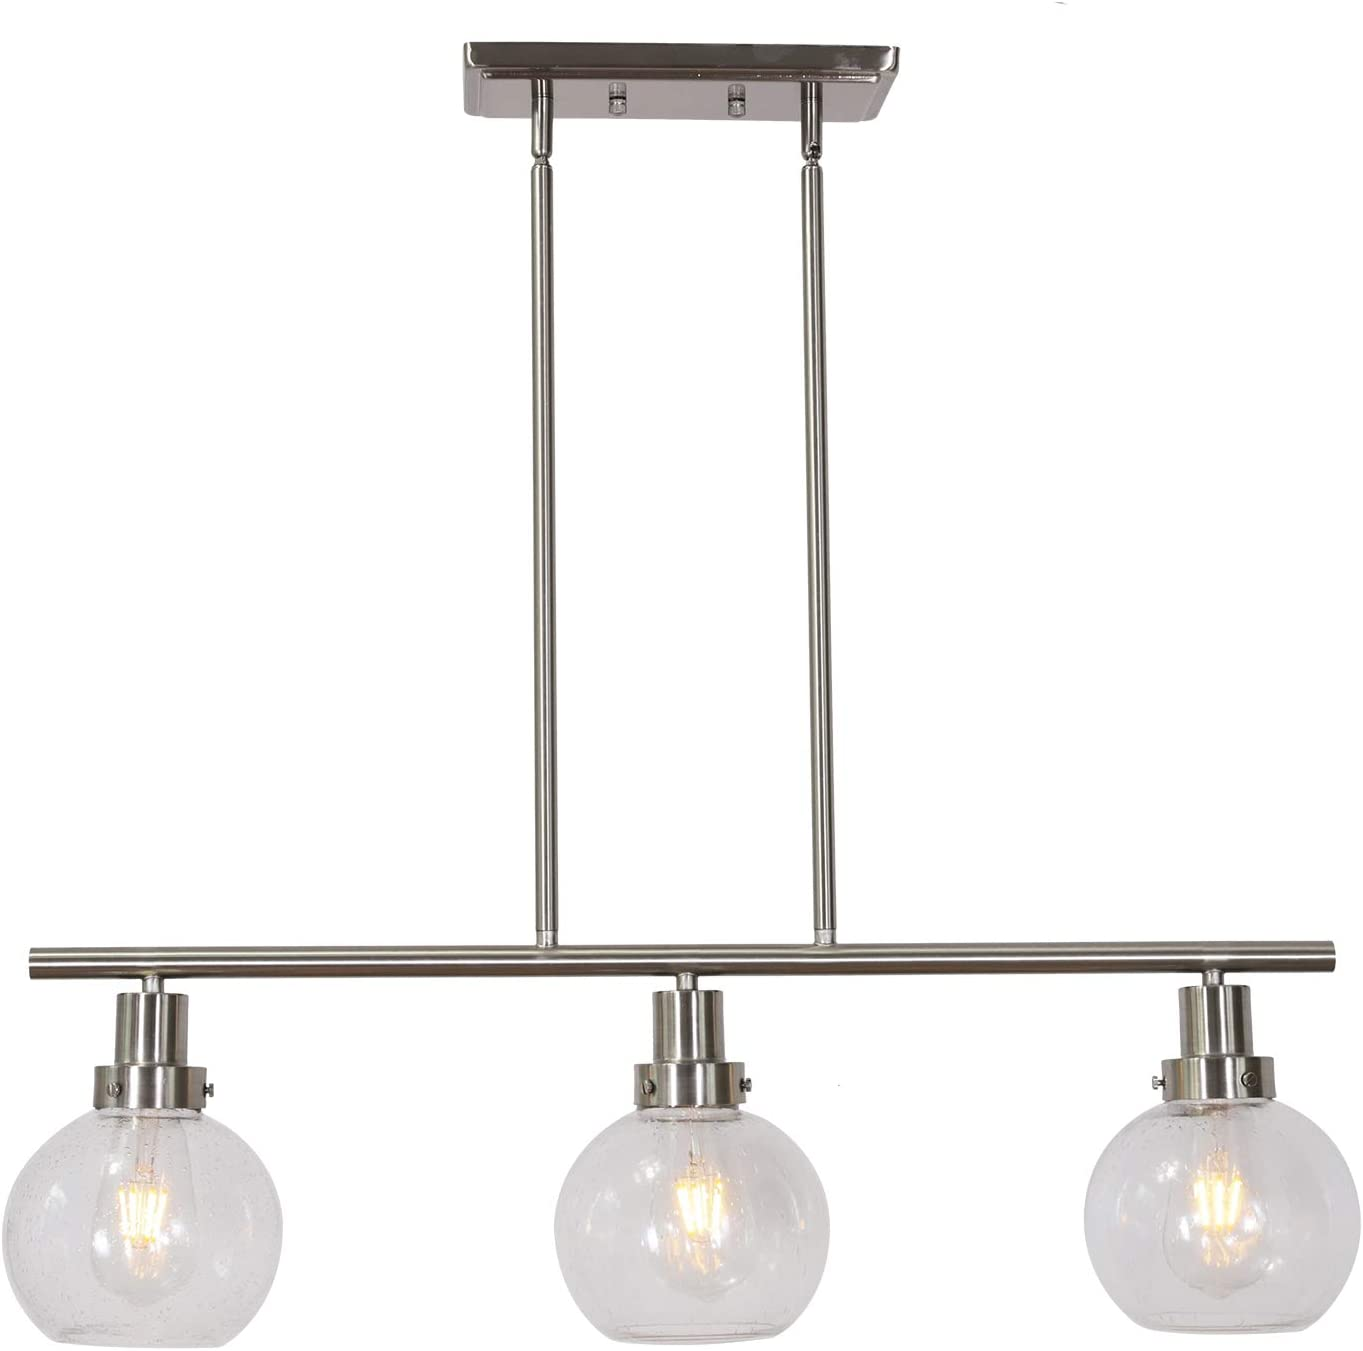 ELUZE 3-Light Industrial Pendant Lighting Modern seeded Glass Ceiling Light with Brushed Nickel Pendant Light for Kitchen Dining Room Bedroom Coffee Shop Bar Foyers